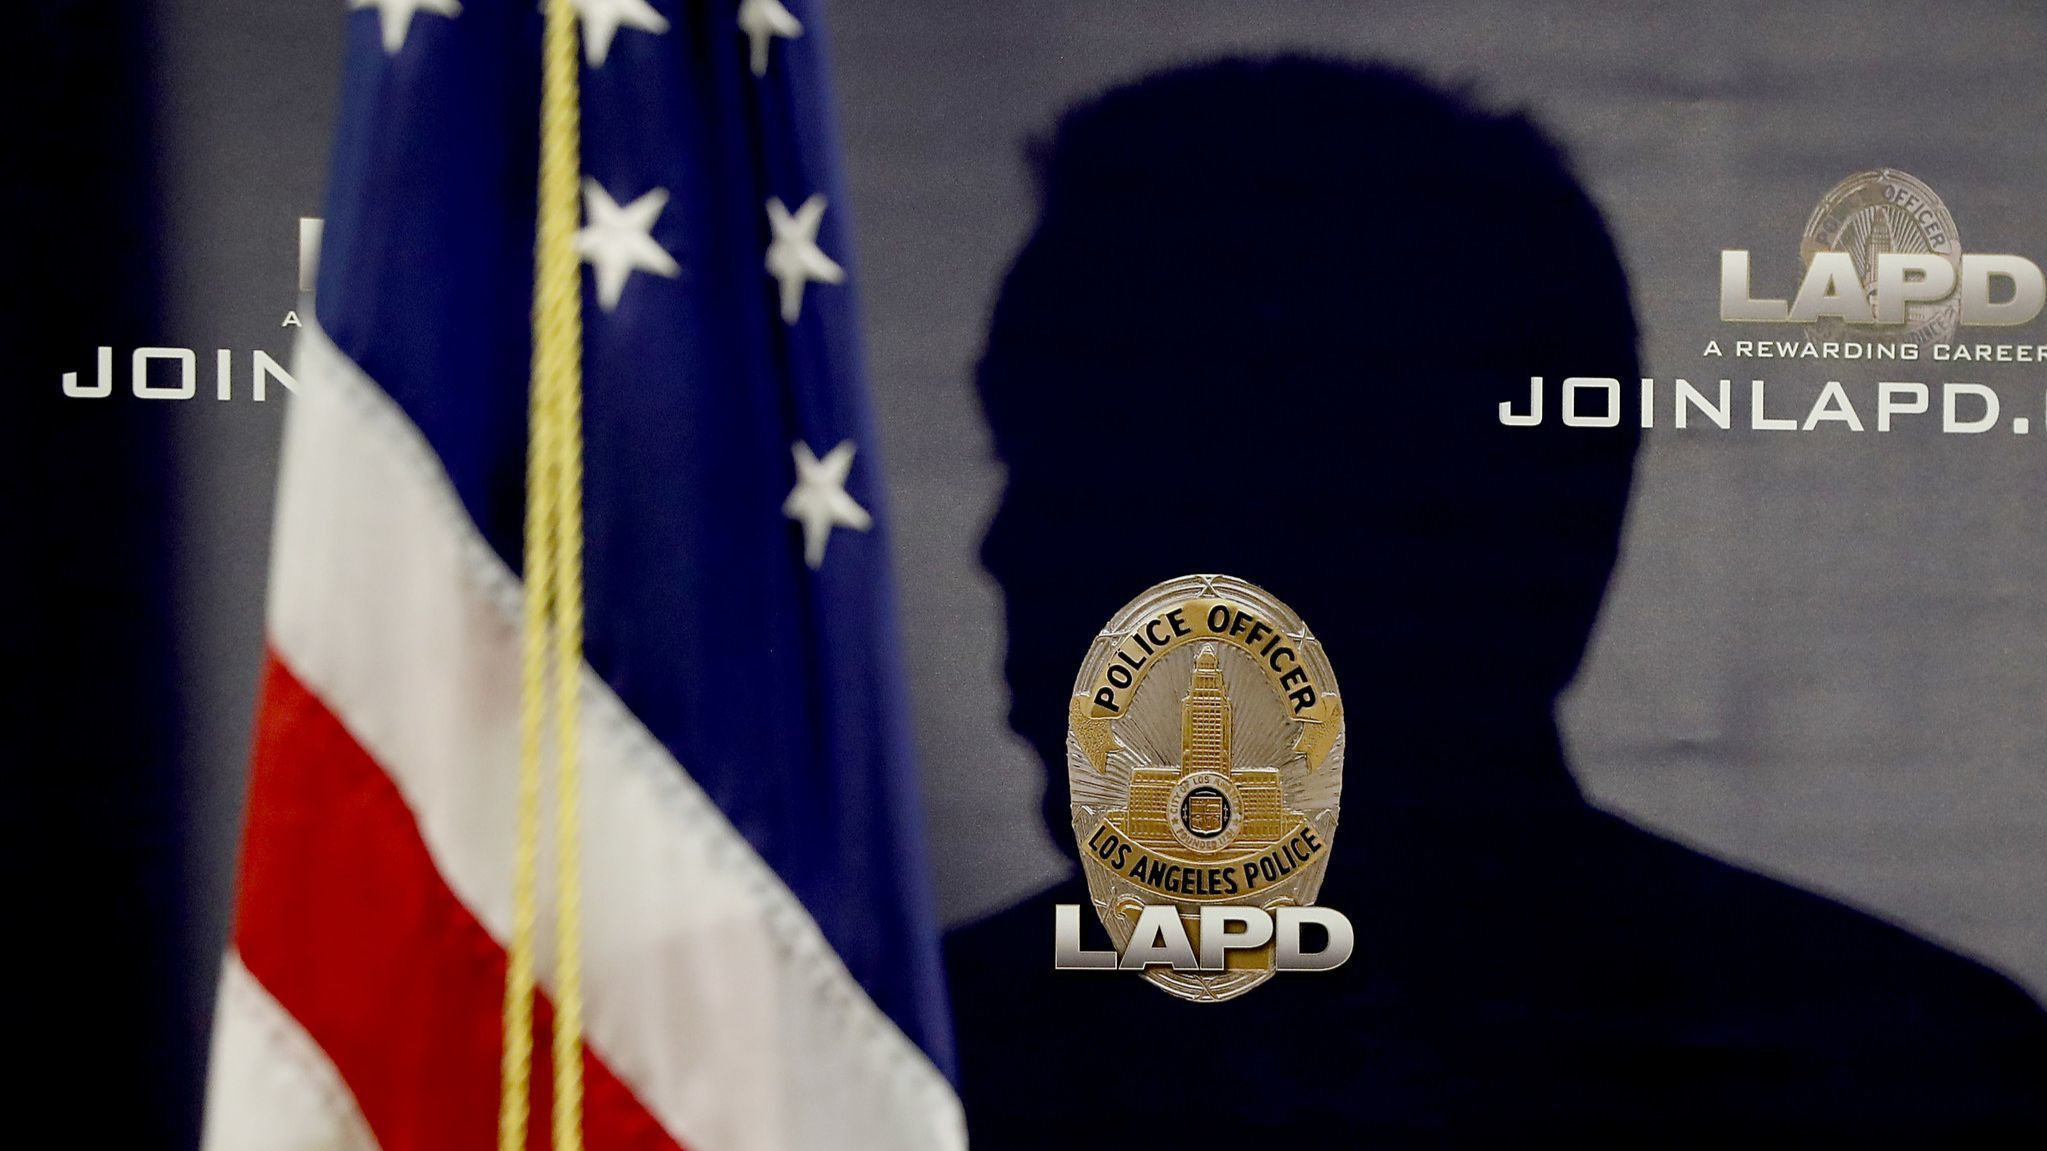 The problem with LAPD's predictive policing